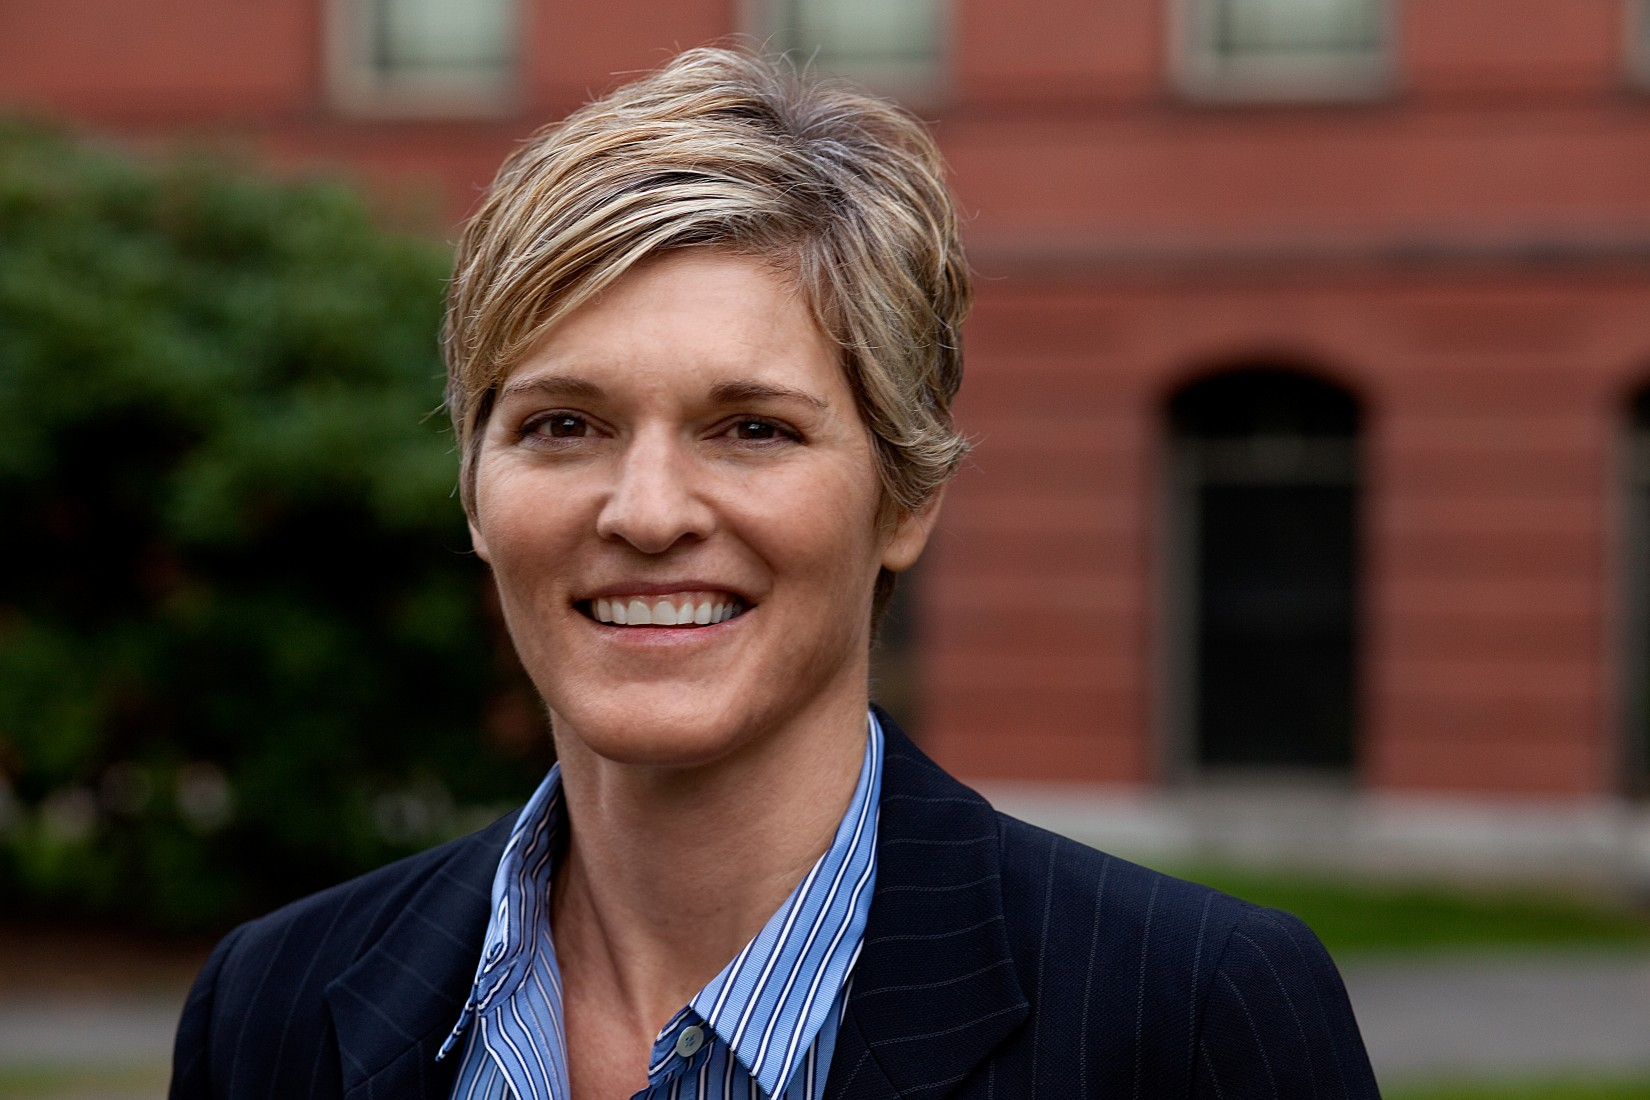 Jody Freeman, the Archibald Cox Professor of Law at Harvard Law School